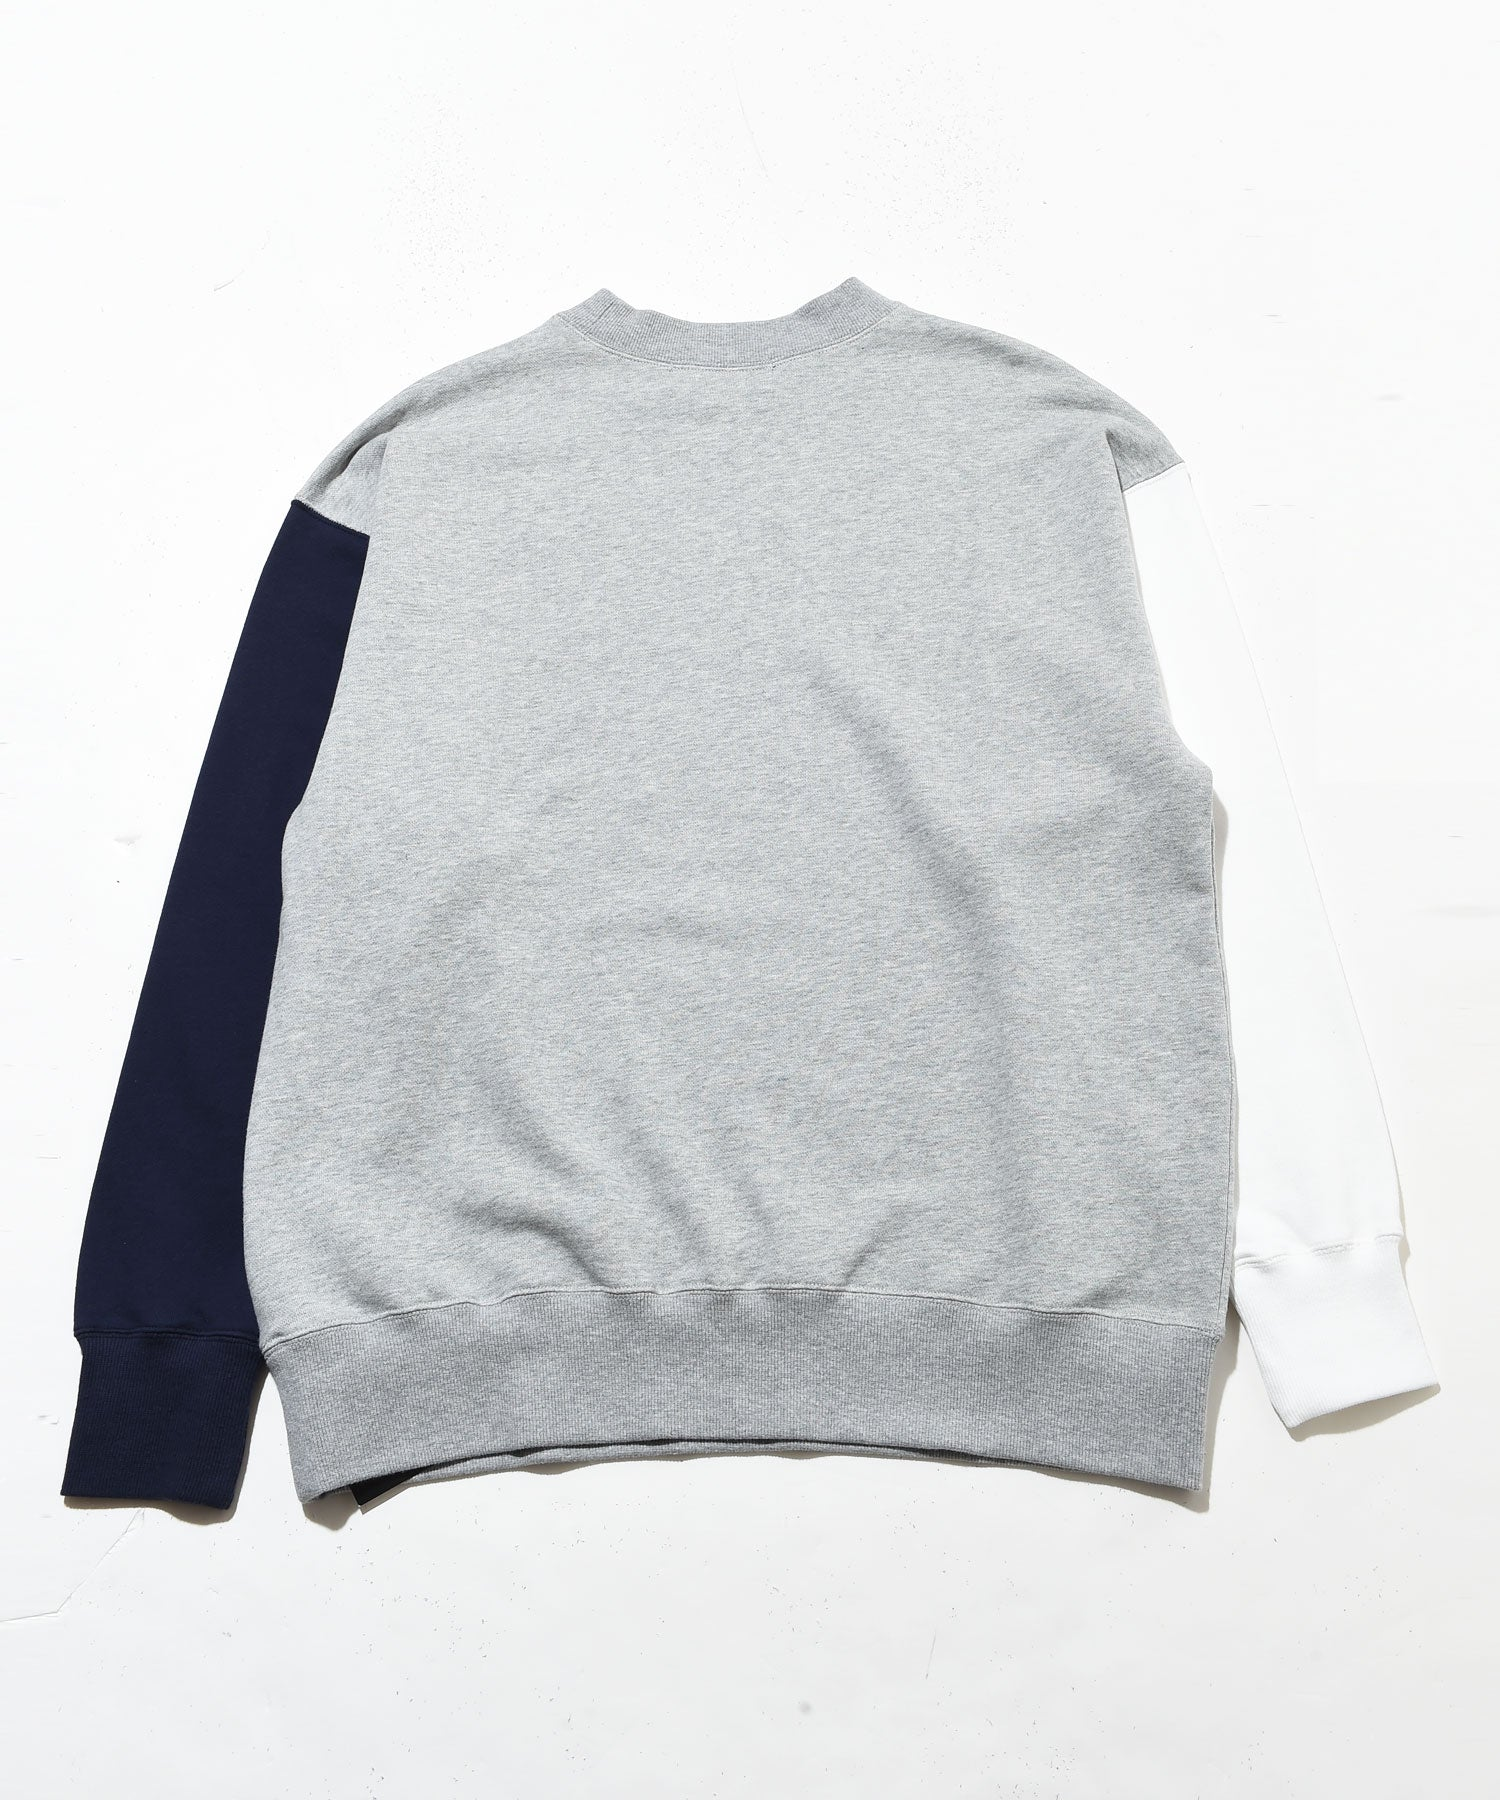 Multicolor crew neck sweat shirt